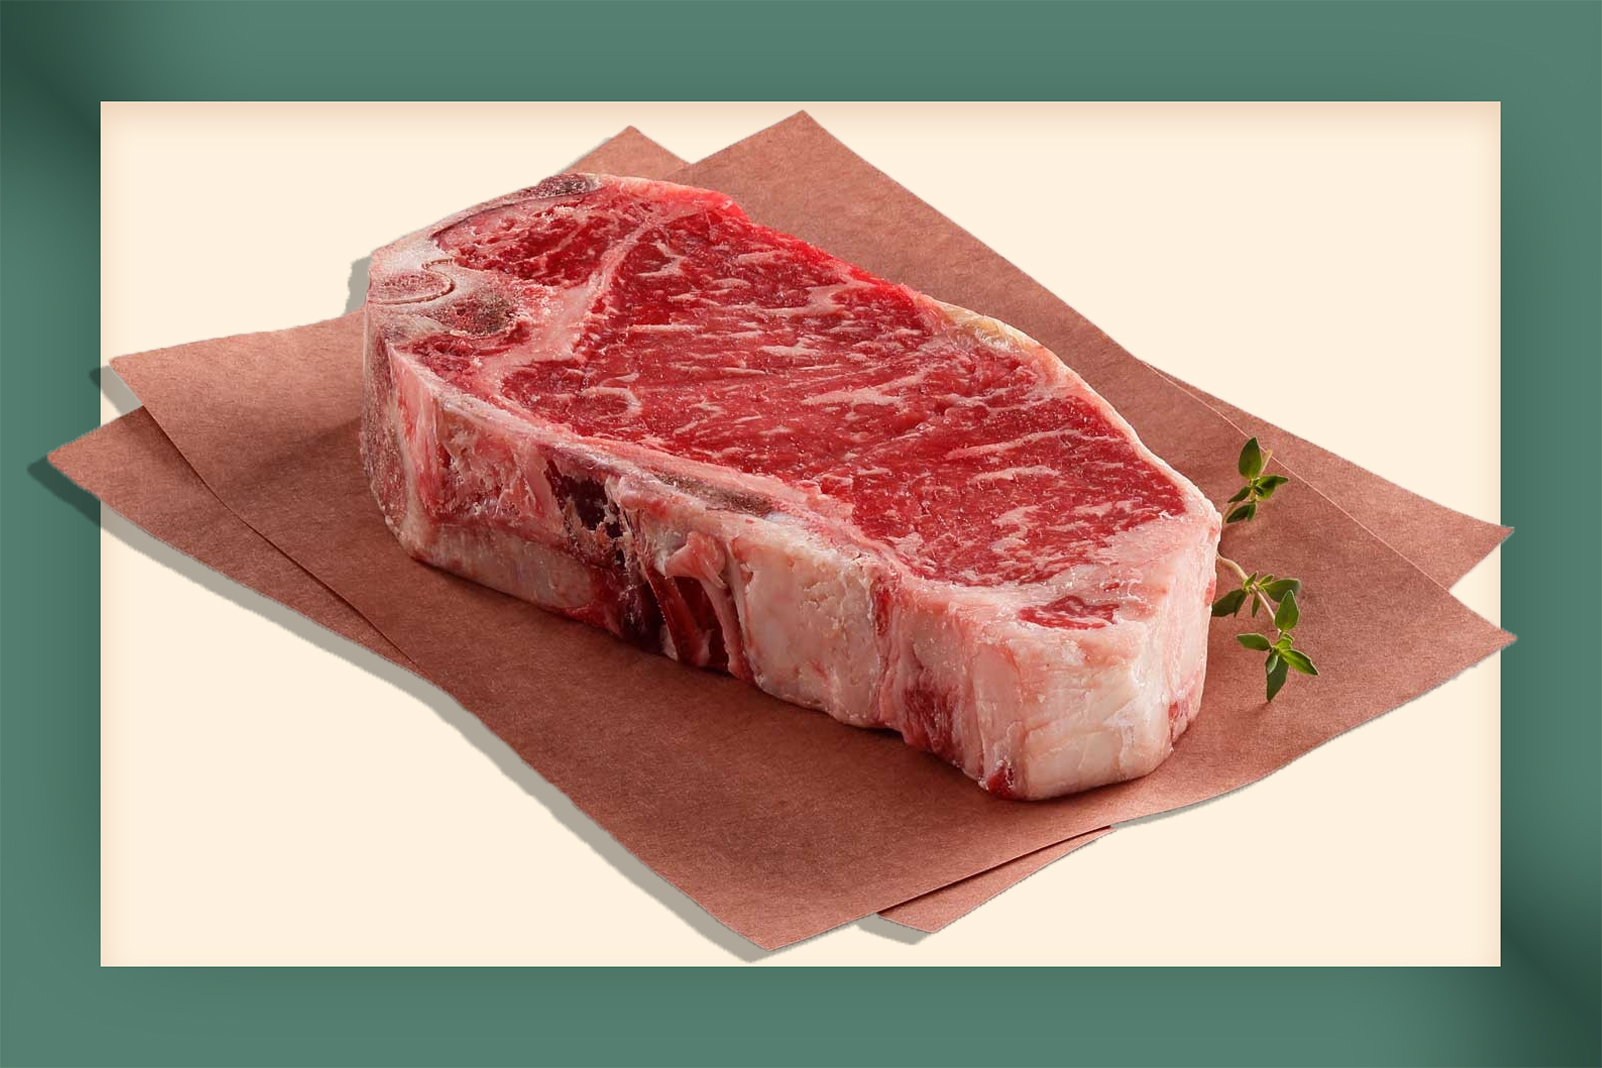 Mother's Day Gifts | Snack River Farms Dry-Aged New York Strip